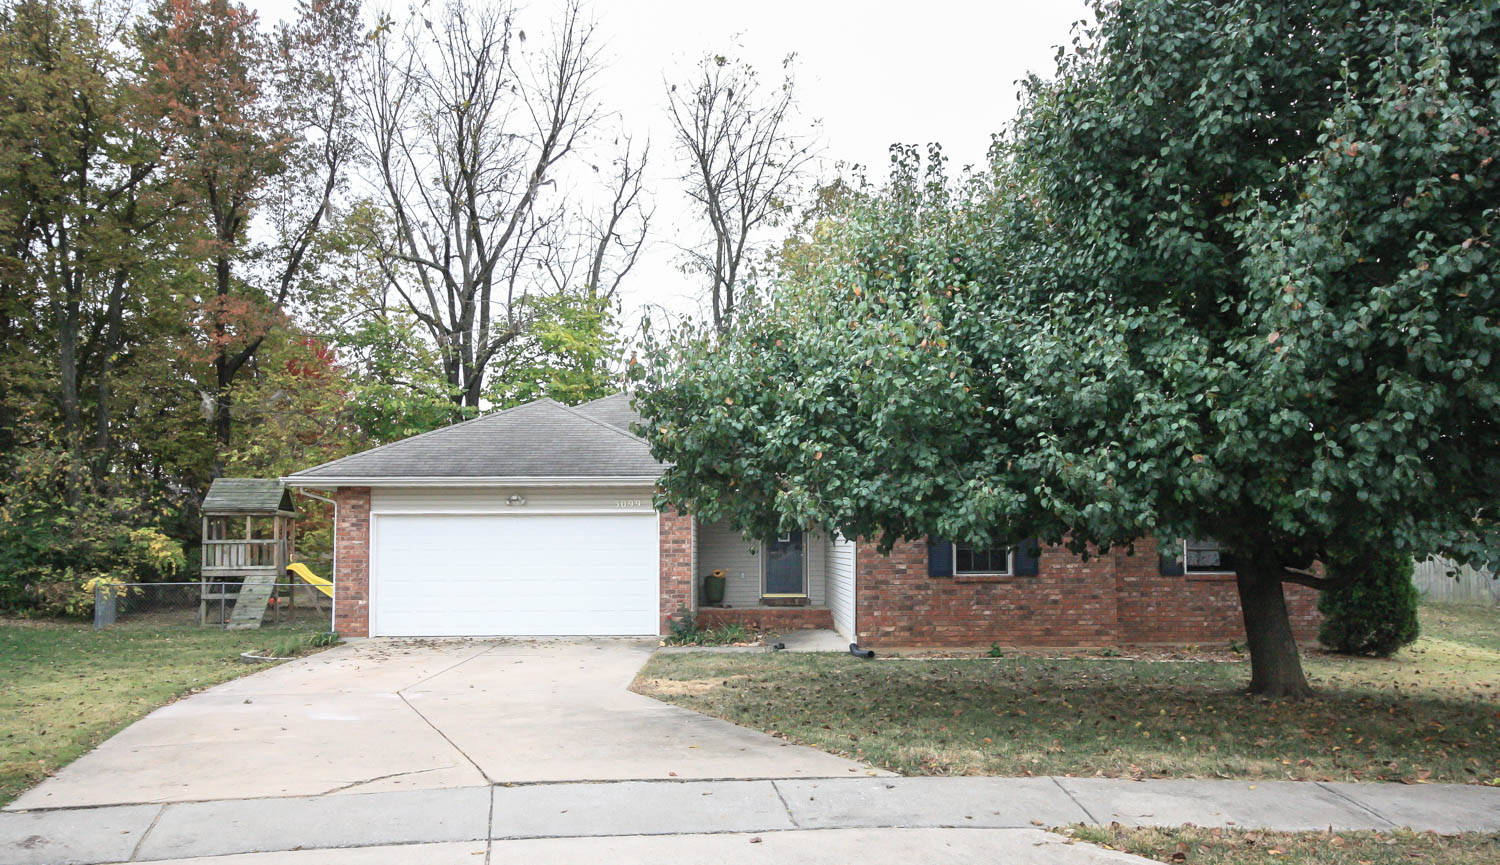 House Just Listed in Springfield mo, Evan Ryan and Buy and Sell Group